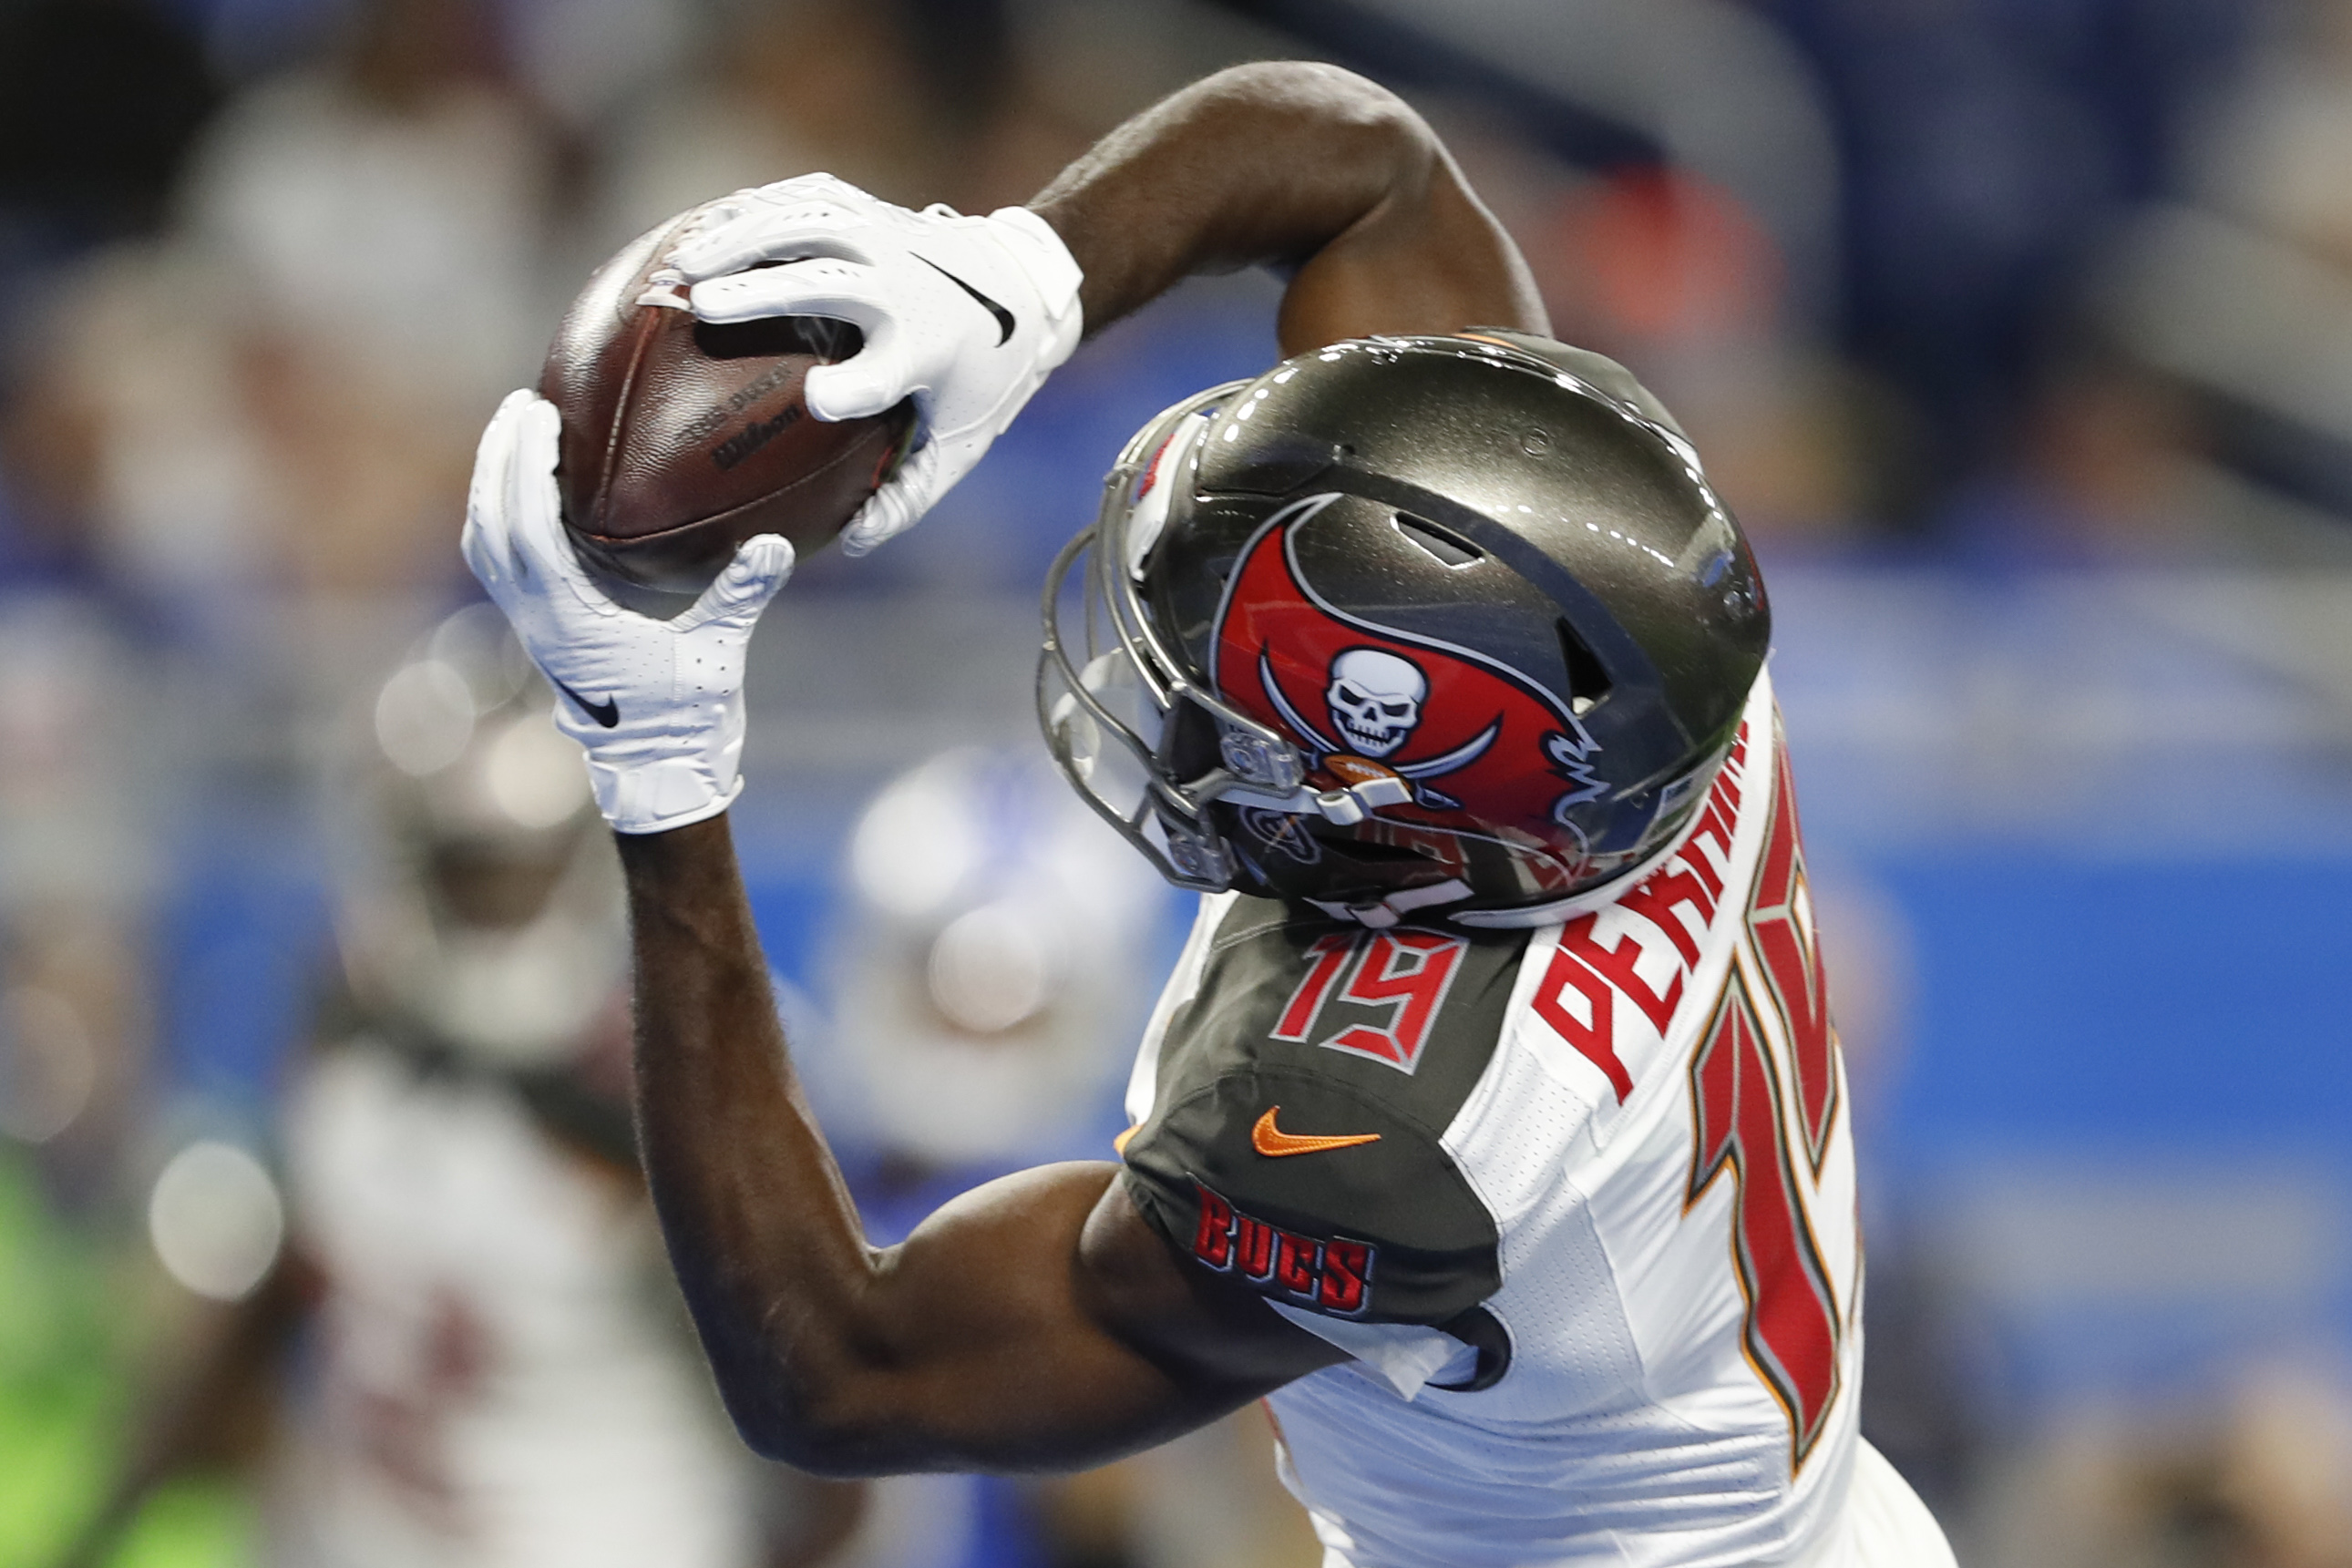 Tampa Bay Buccaneers wide receiver Breshad Perriman makes a touchdown reception during the first quarter against the Detroit Lions at Ford Field